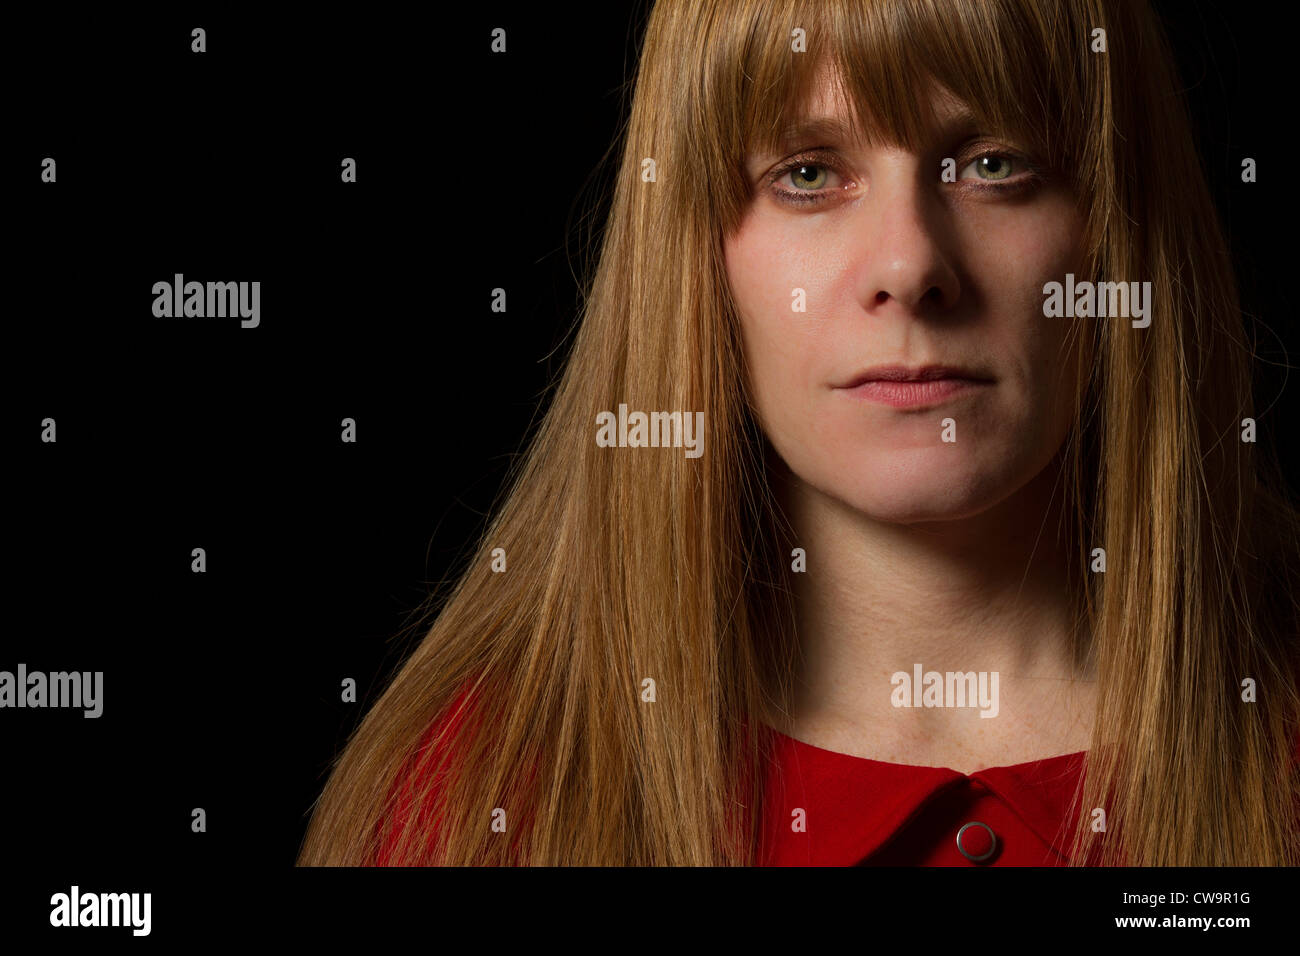 38 year old woman looking to camera, in front of black background. - Stock Image